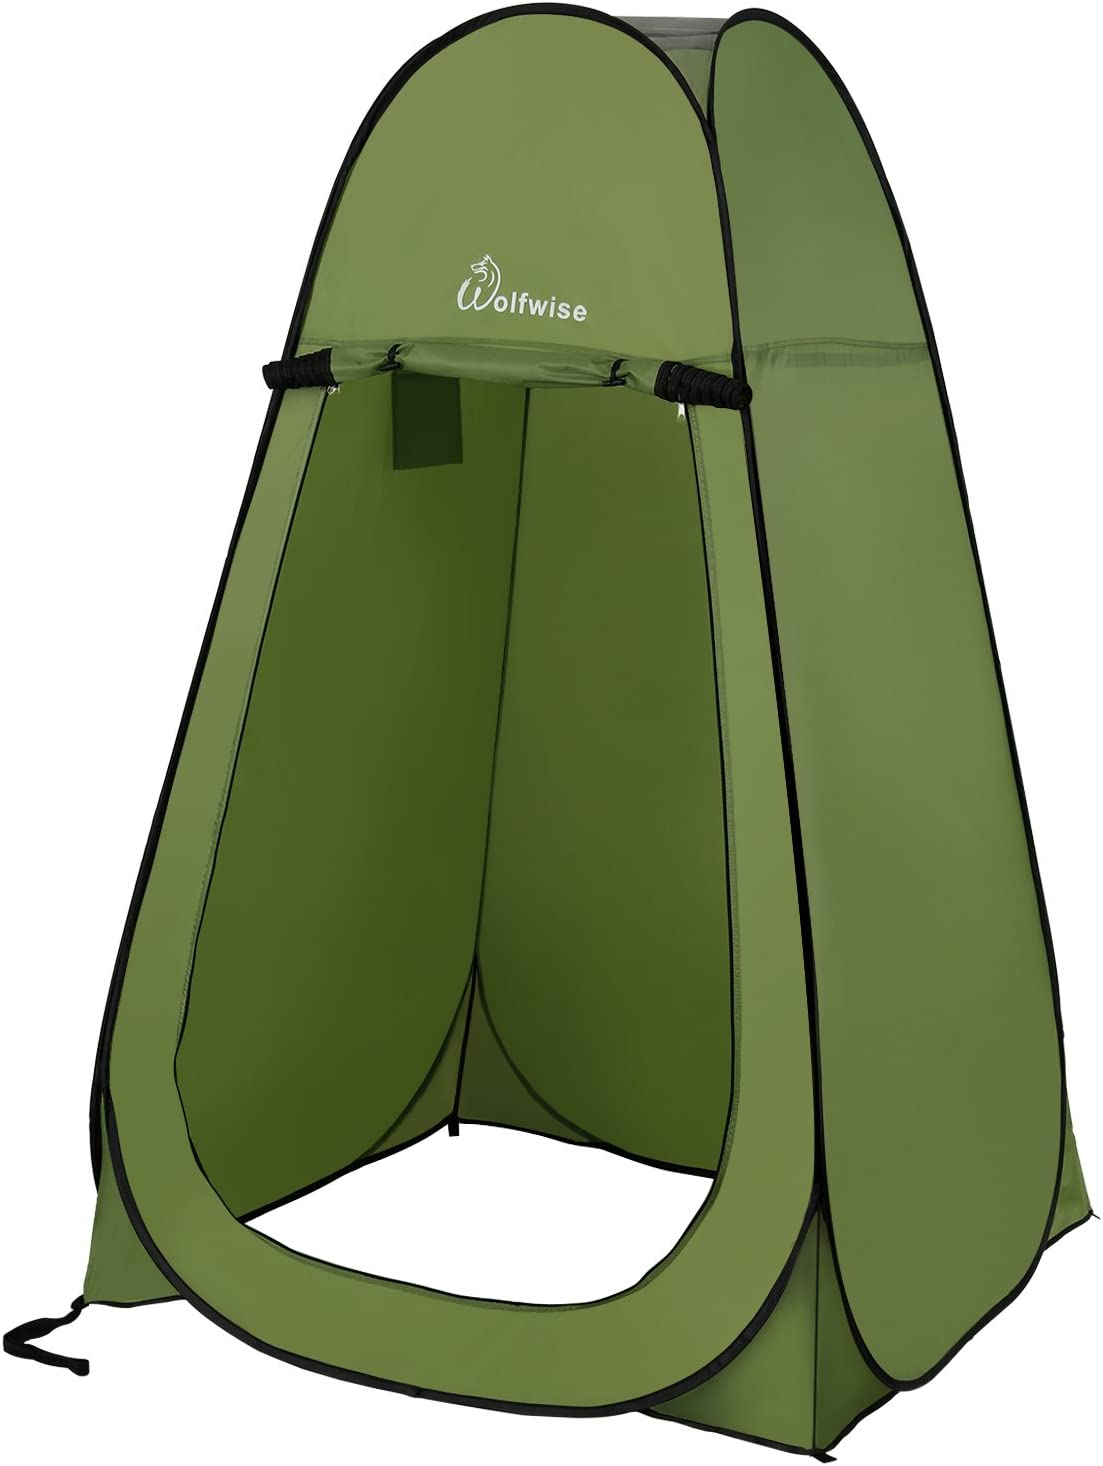 WolfWise Pop-up Shower Tent  sc 1 st  Amazon.com & Backpacking Tents | Amazon.com